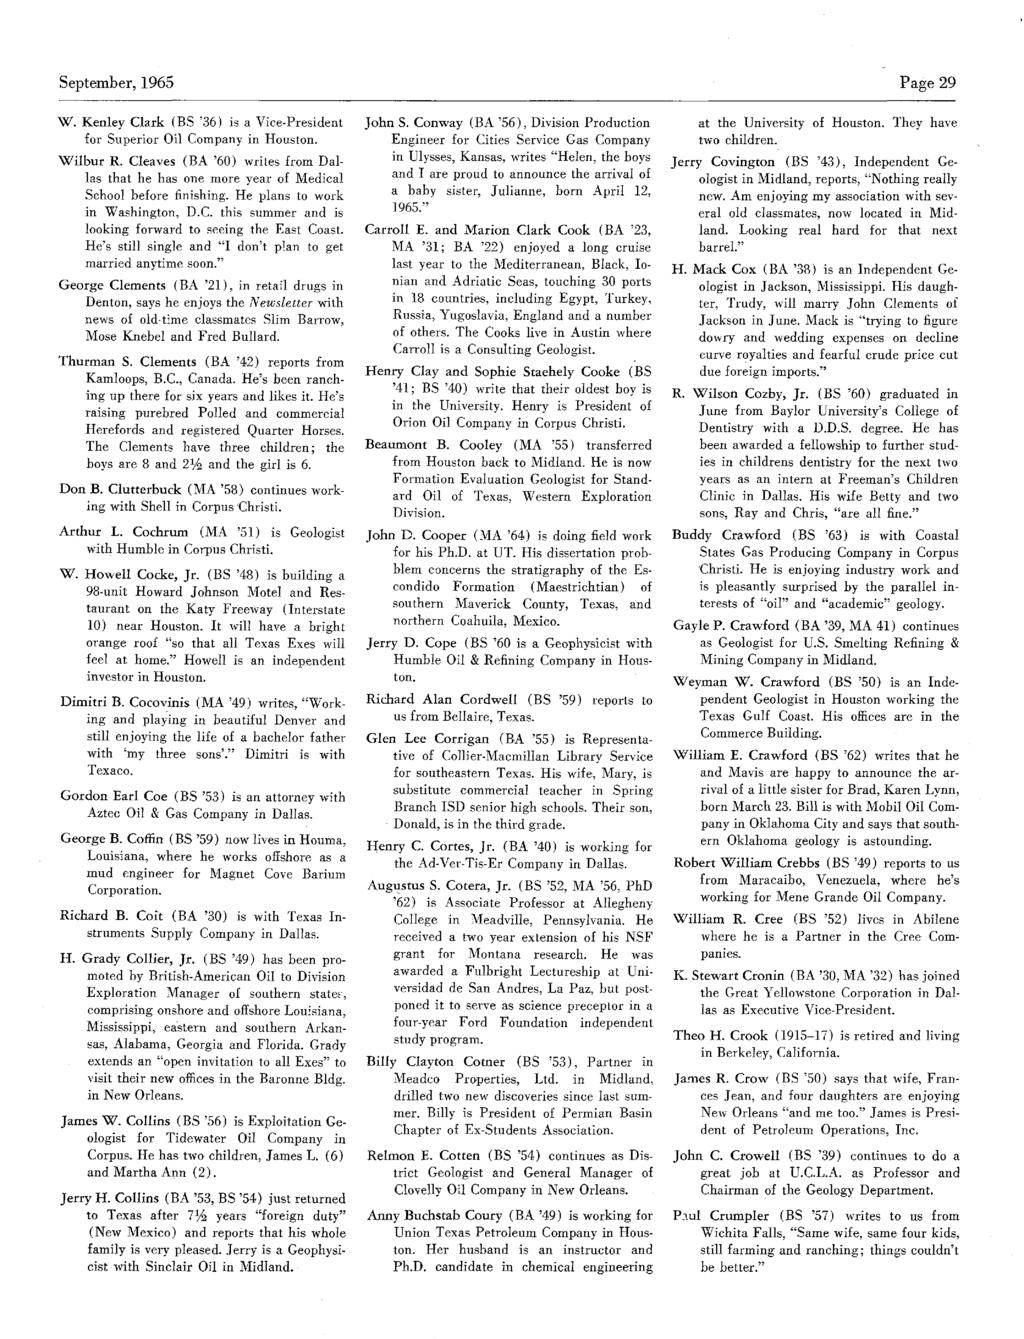 September,1965 Page 29 W. Kenley Clark (BS '36) is a Vice-President for Superior Oil Company in Houston. Wilbur R.